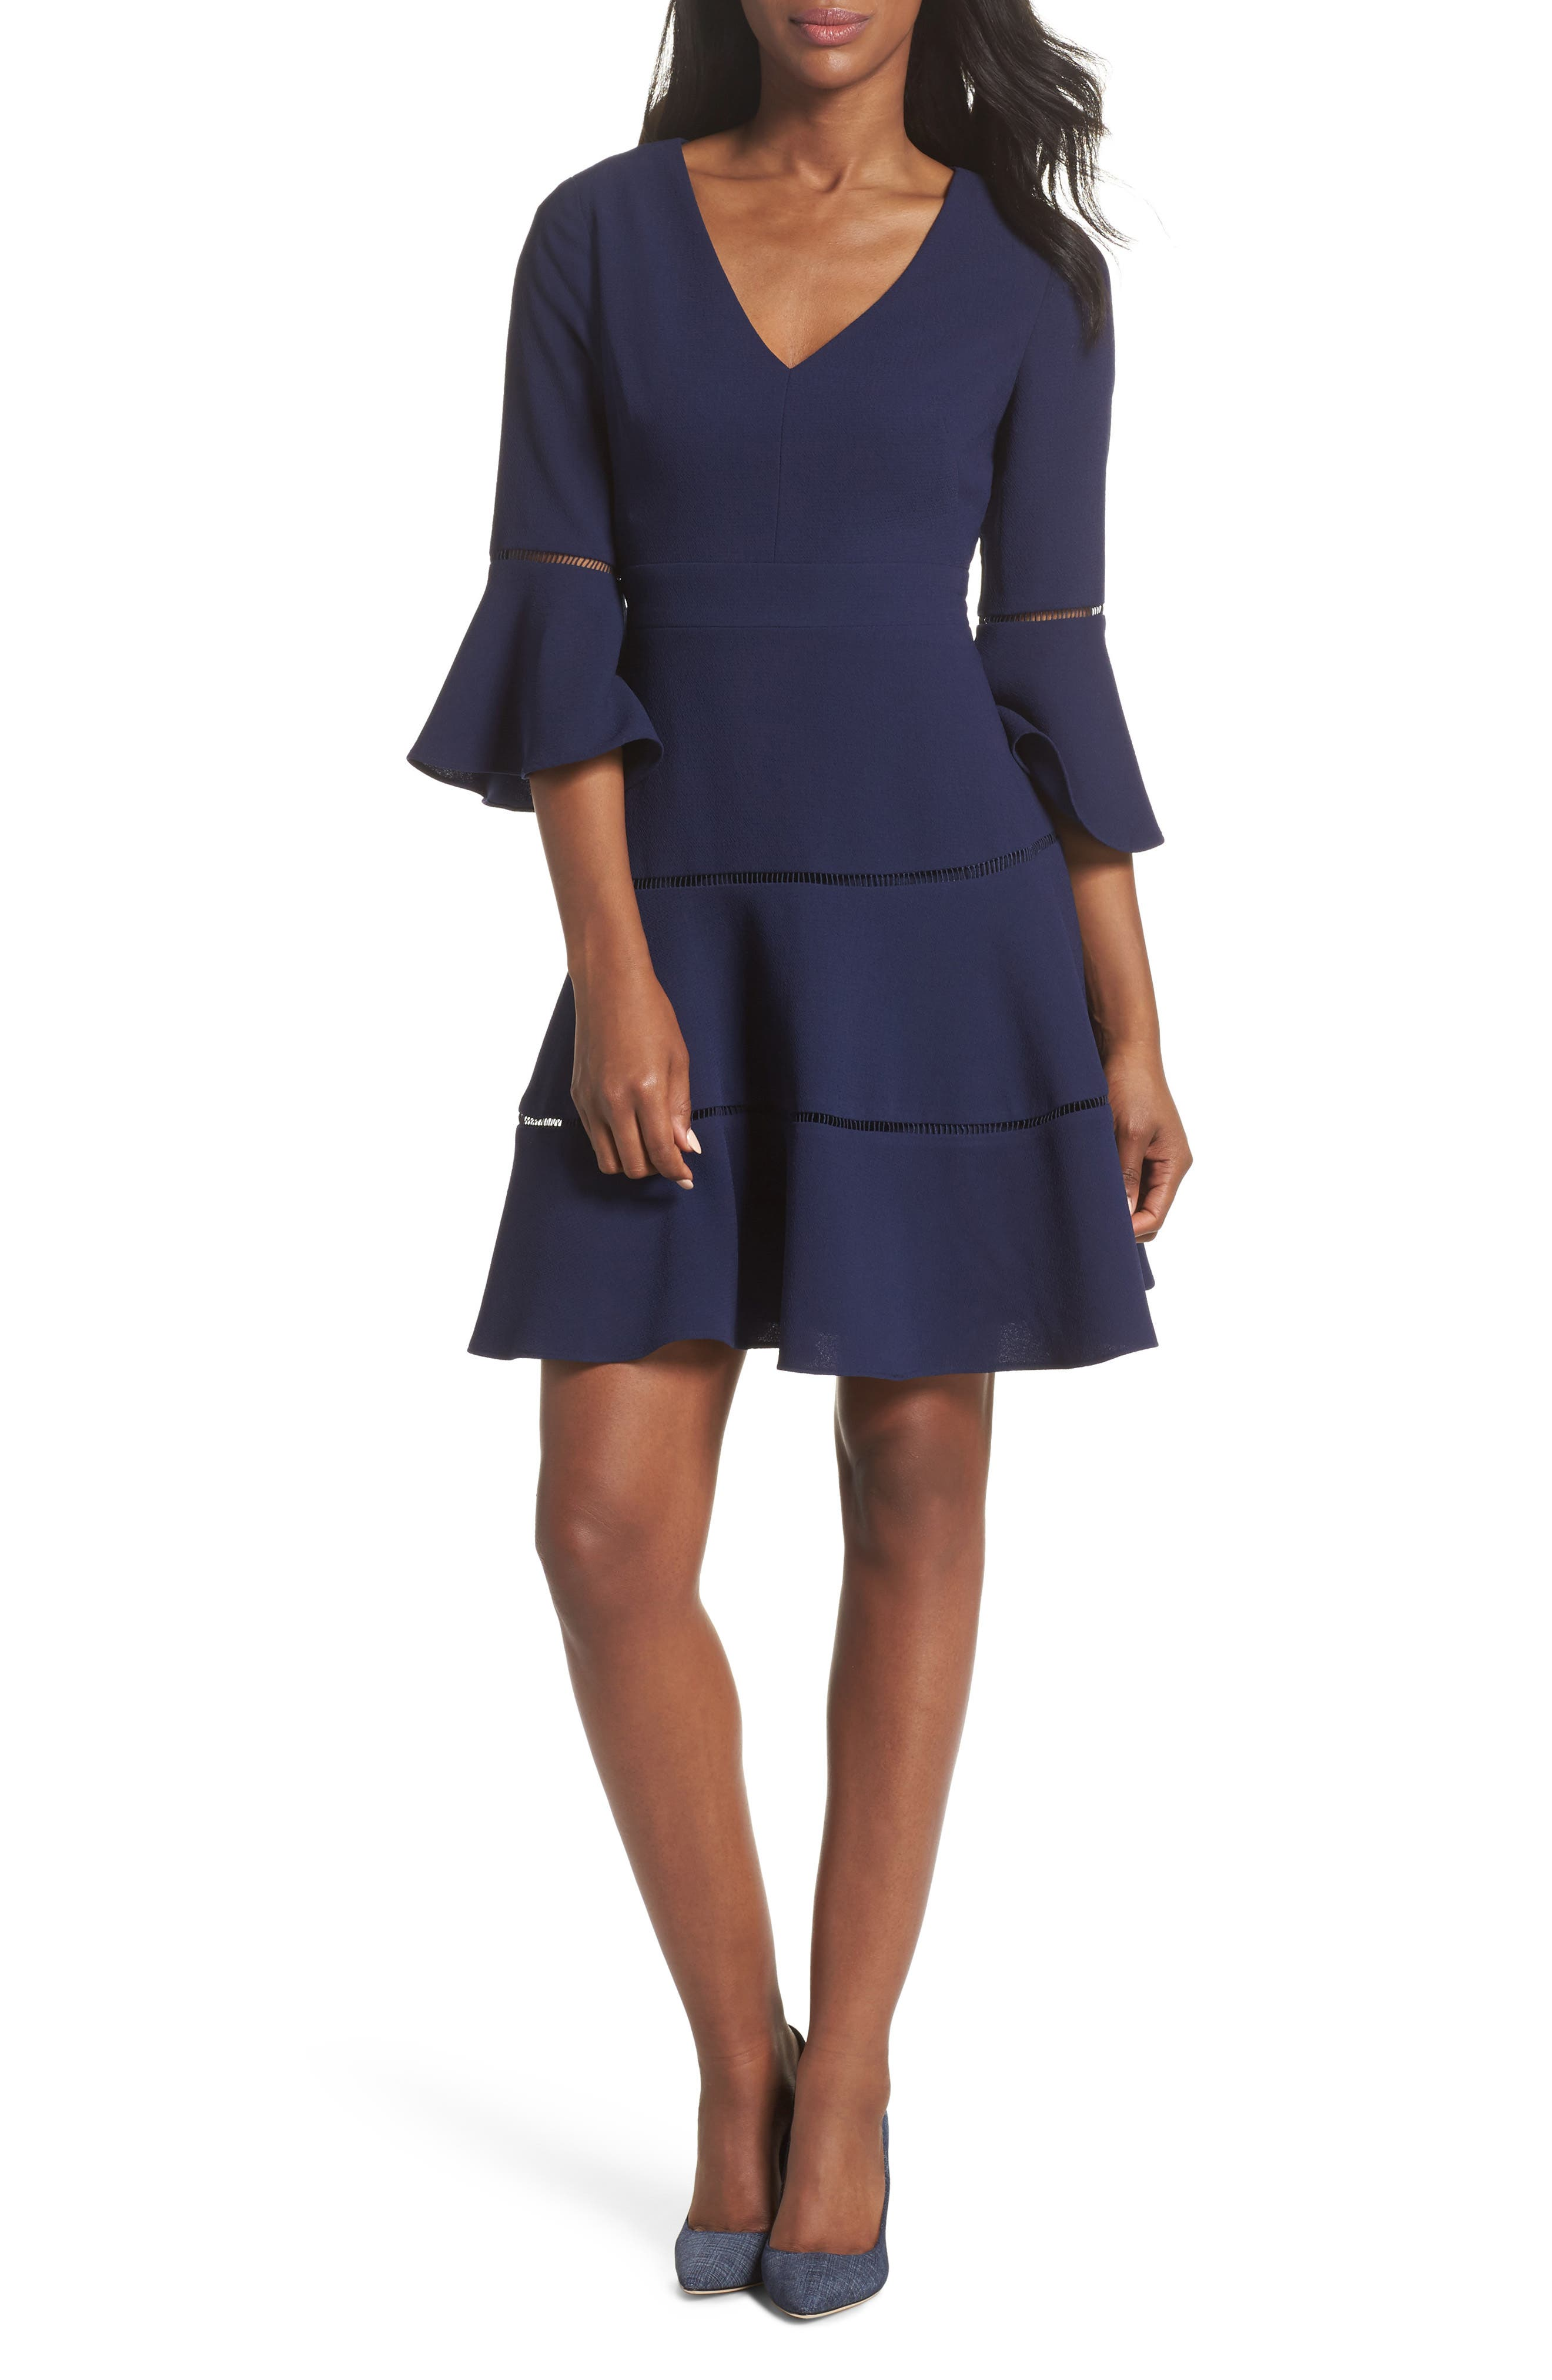 ELIZA J, Bell Sleeve Lace Inset Fit & Flare Dress, Main thumbnail 1, color, 410